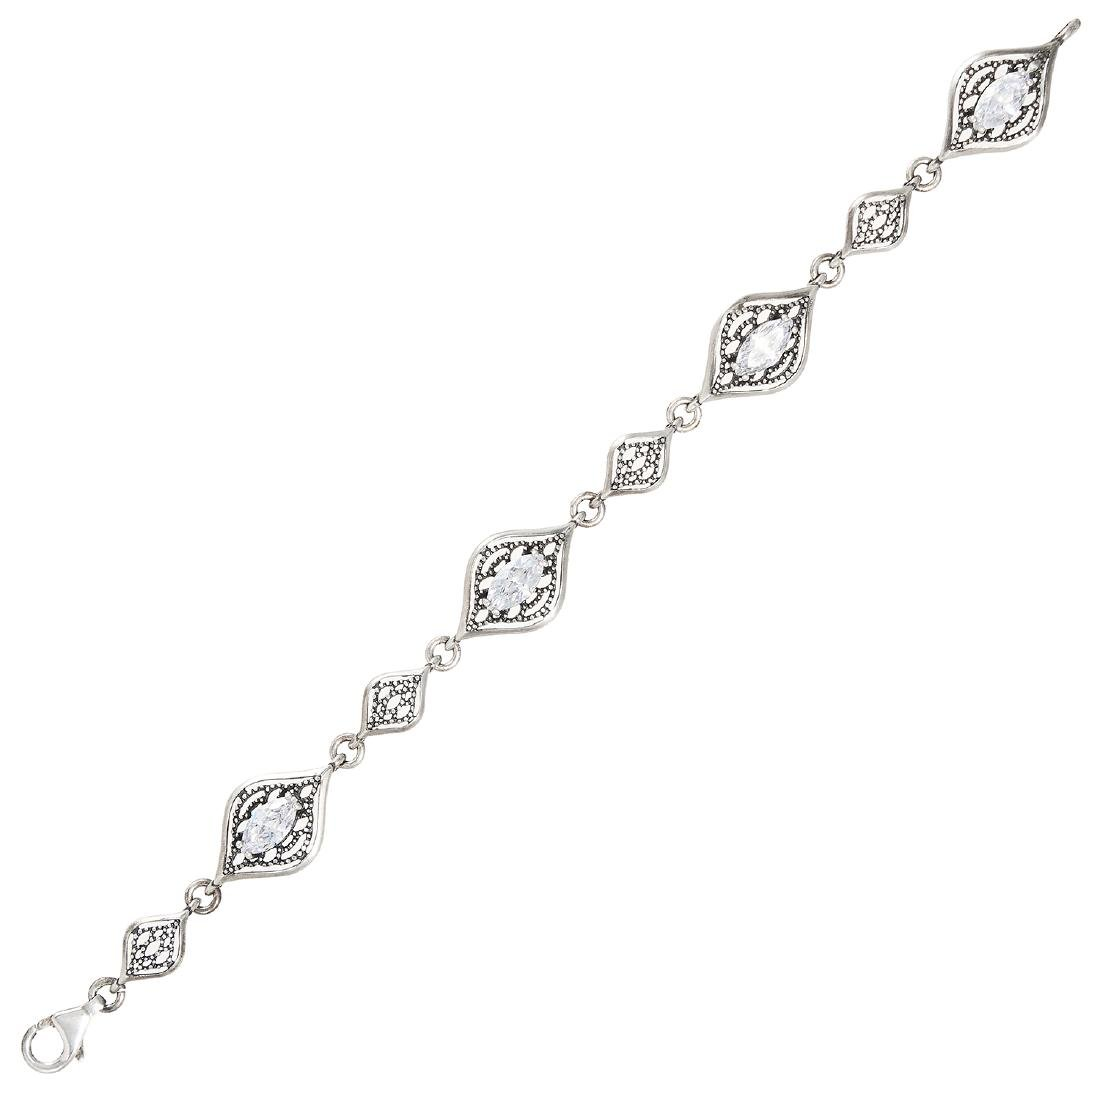 A WHITE GEMSTONE BRACELET in sterling silver, set with